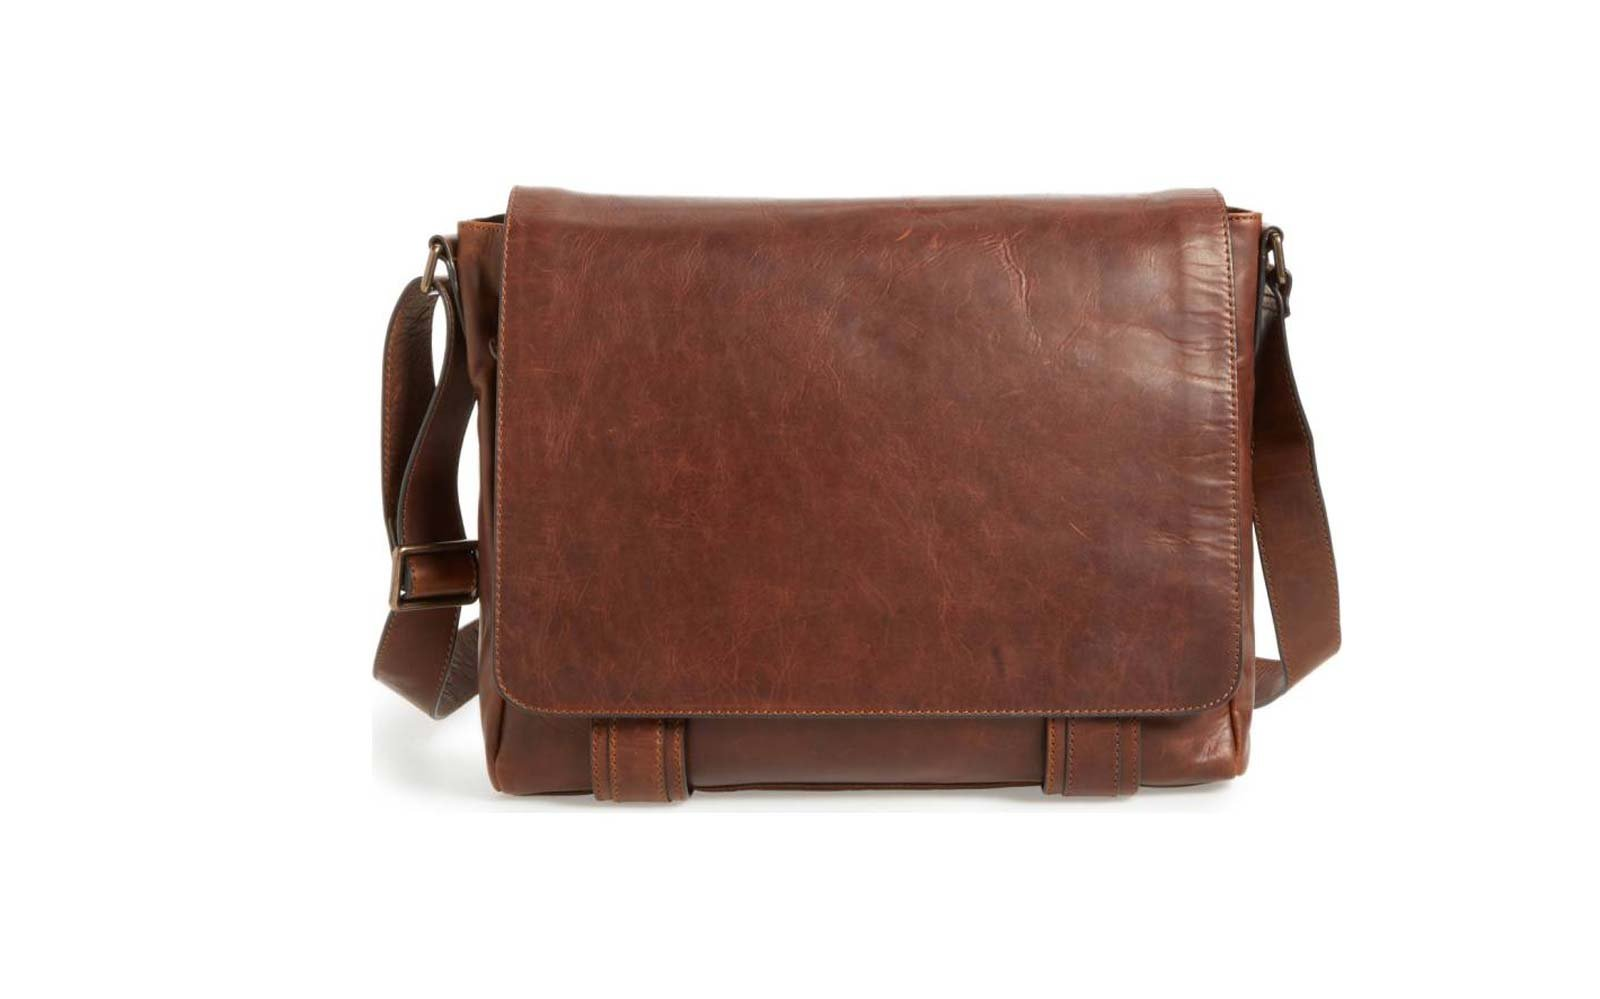 7422fecb6df4 The 9 Best Leather Messenger Bags for Men